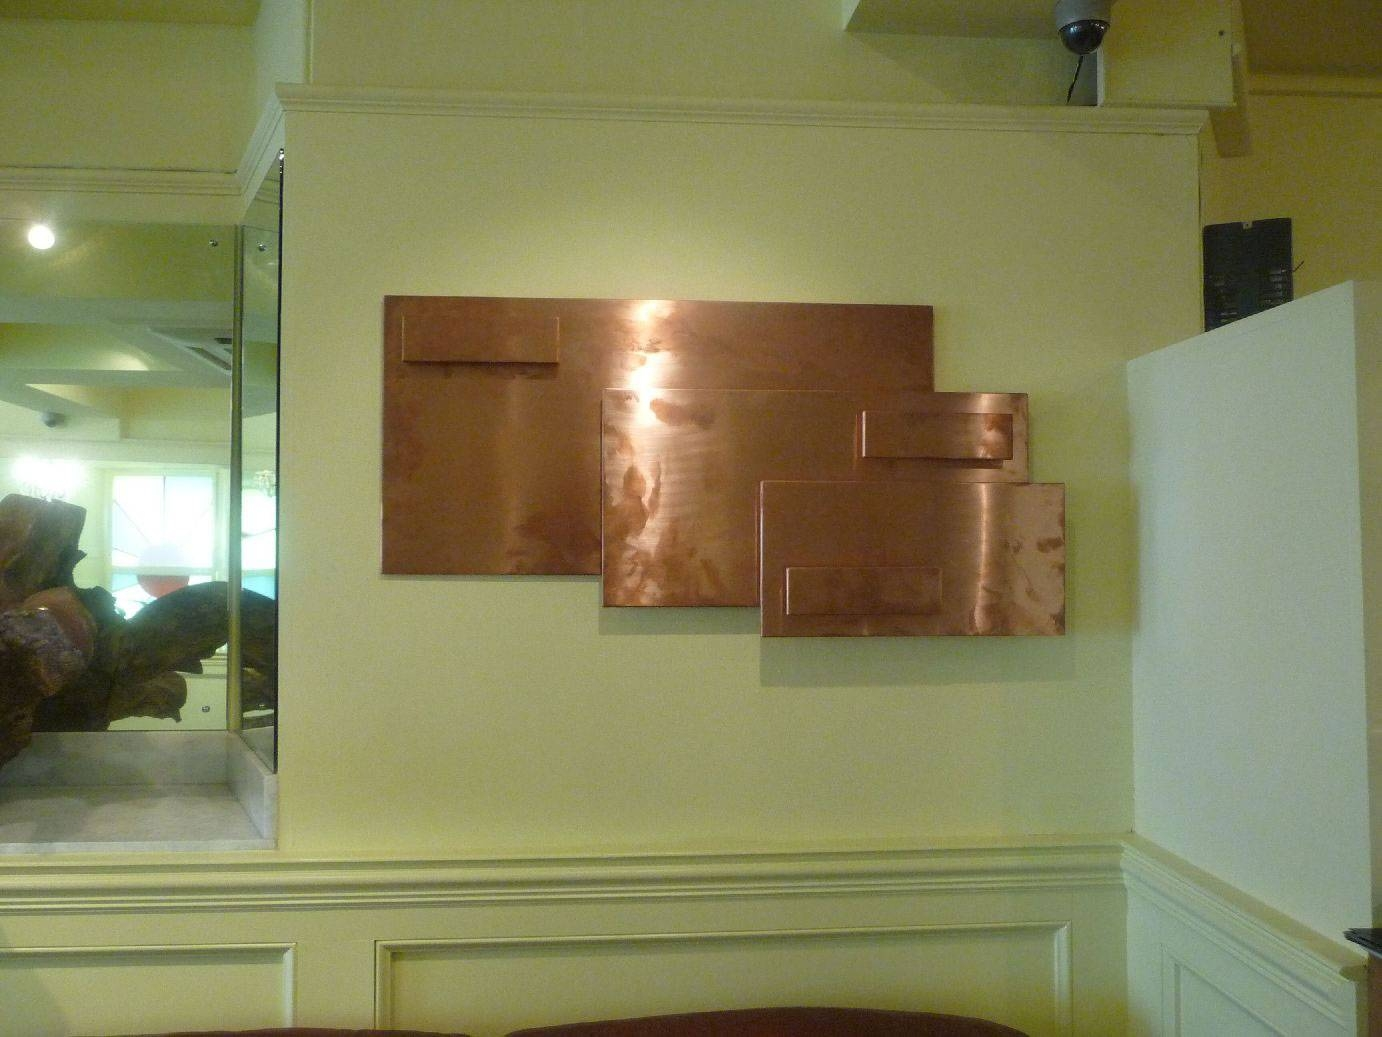 Custom Wall Art | Matal Art For Restaurants | Metal Working Within Most Up To Date Large Copper Wall Art (View 15 of 30)